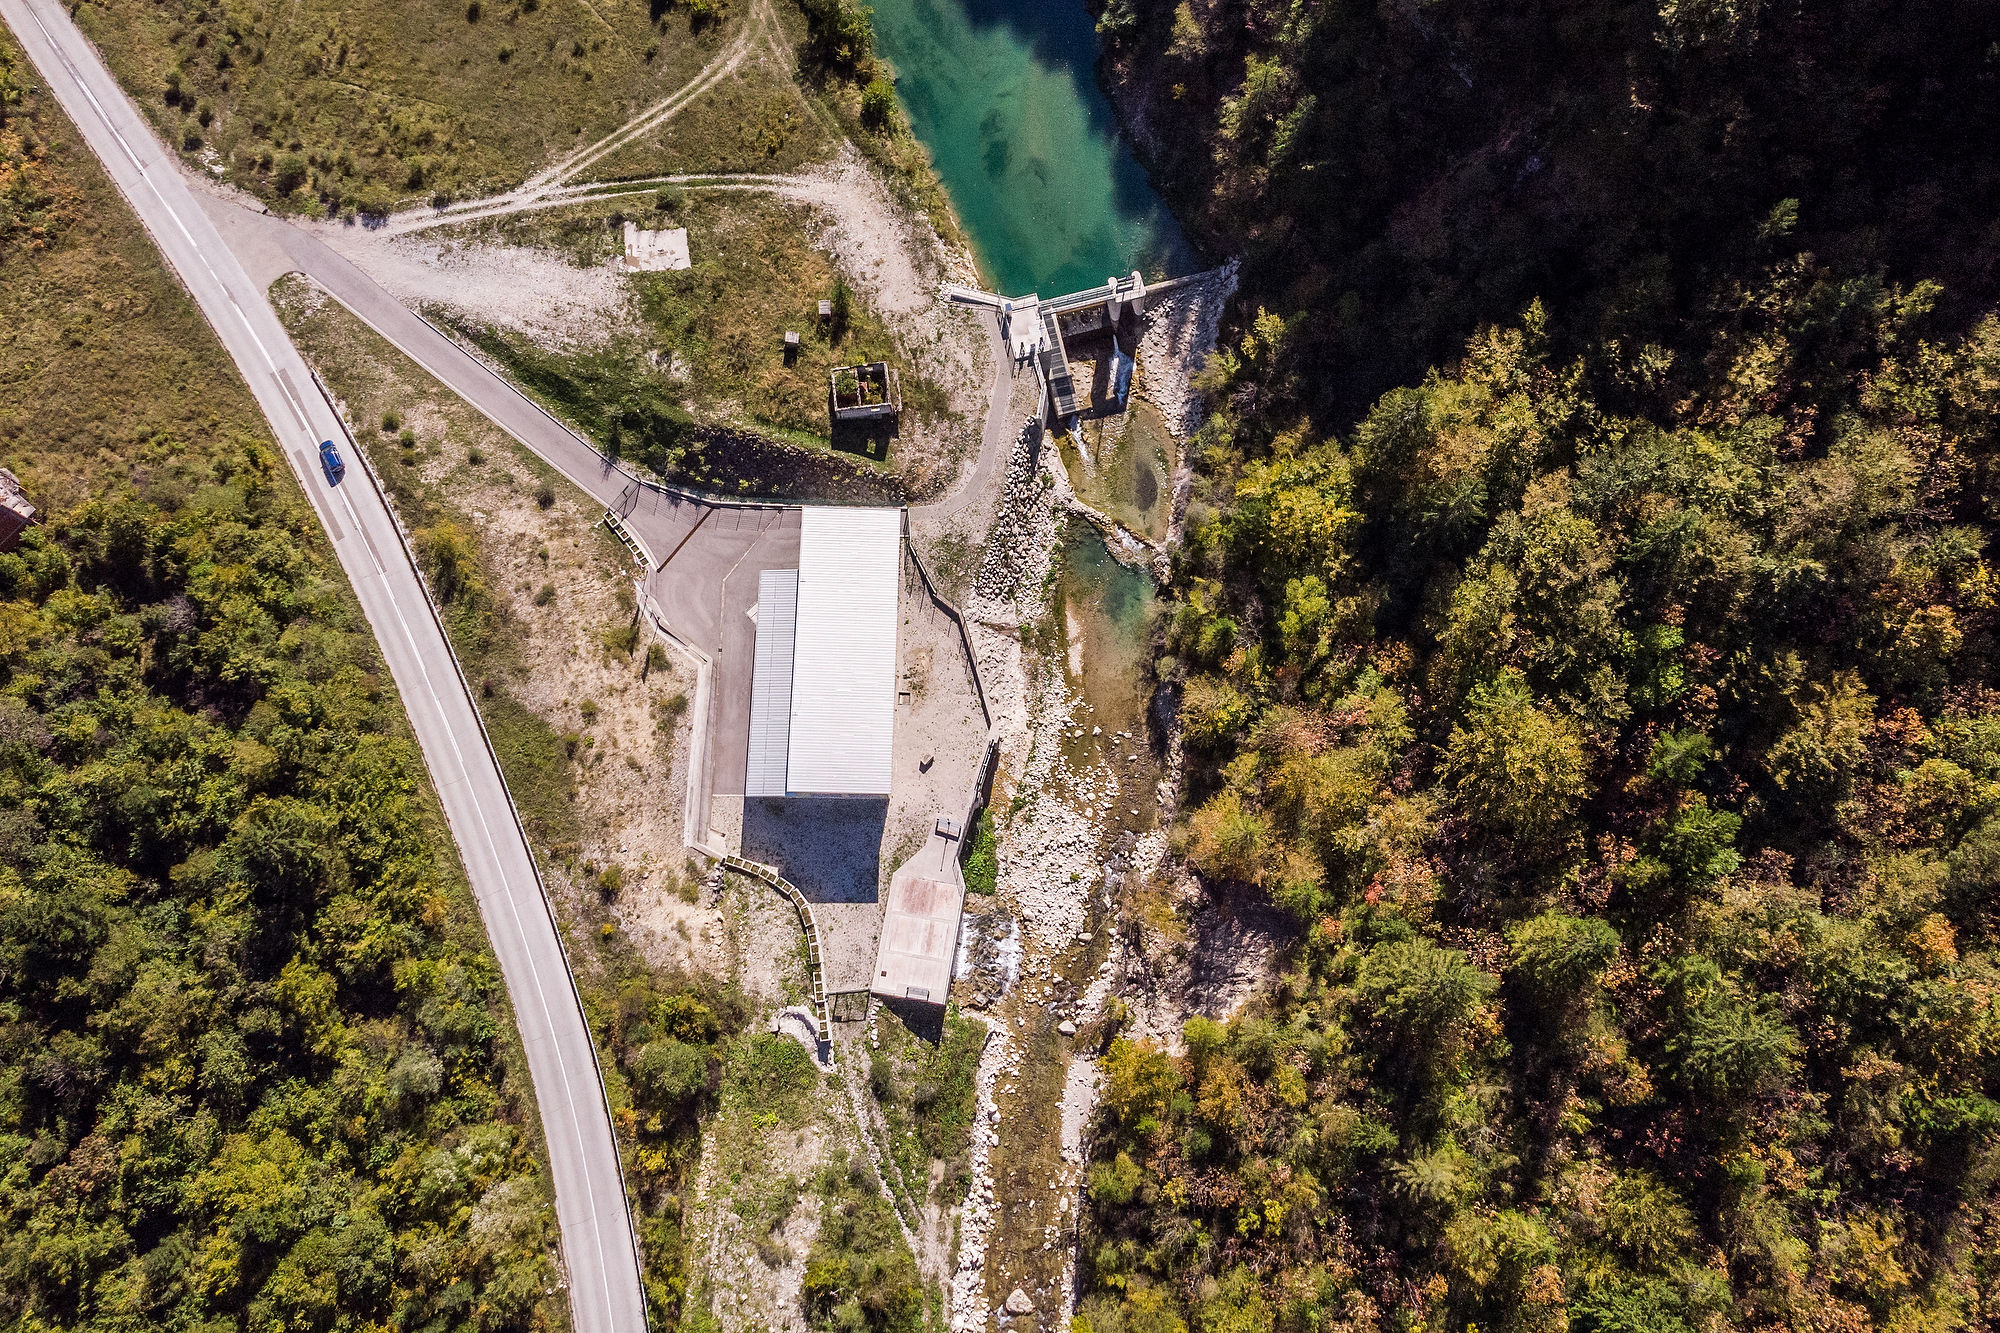 This is what destructive hydropower looks like. Below the dam, the river is reduced to a trickle, here at the Ugar river in Bosnia and Herzegovina © Amel Emric